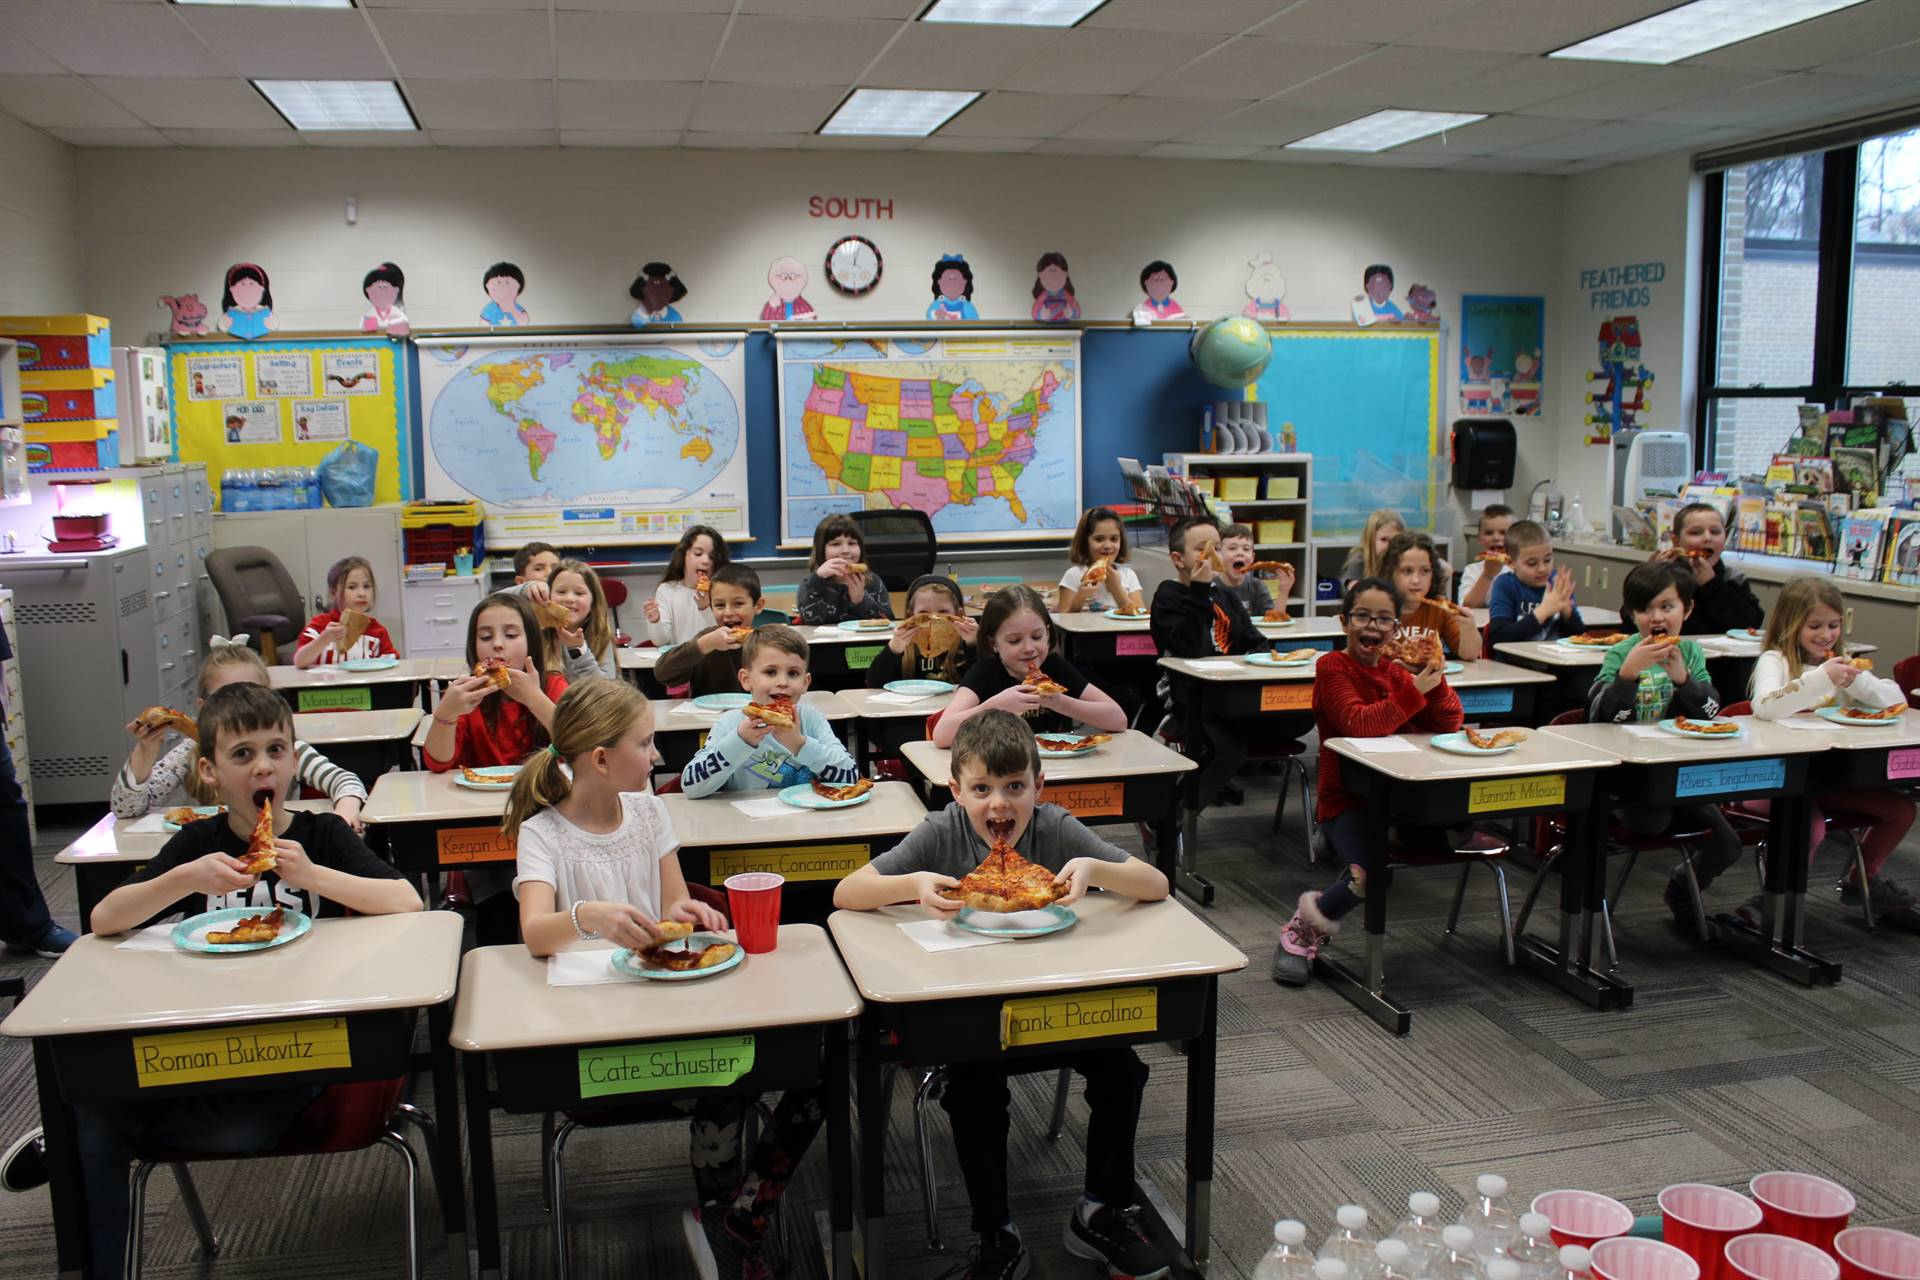 Classroom of students eating pizza